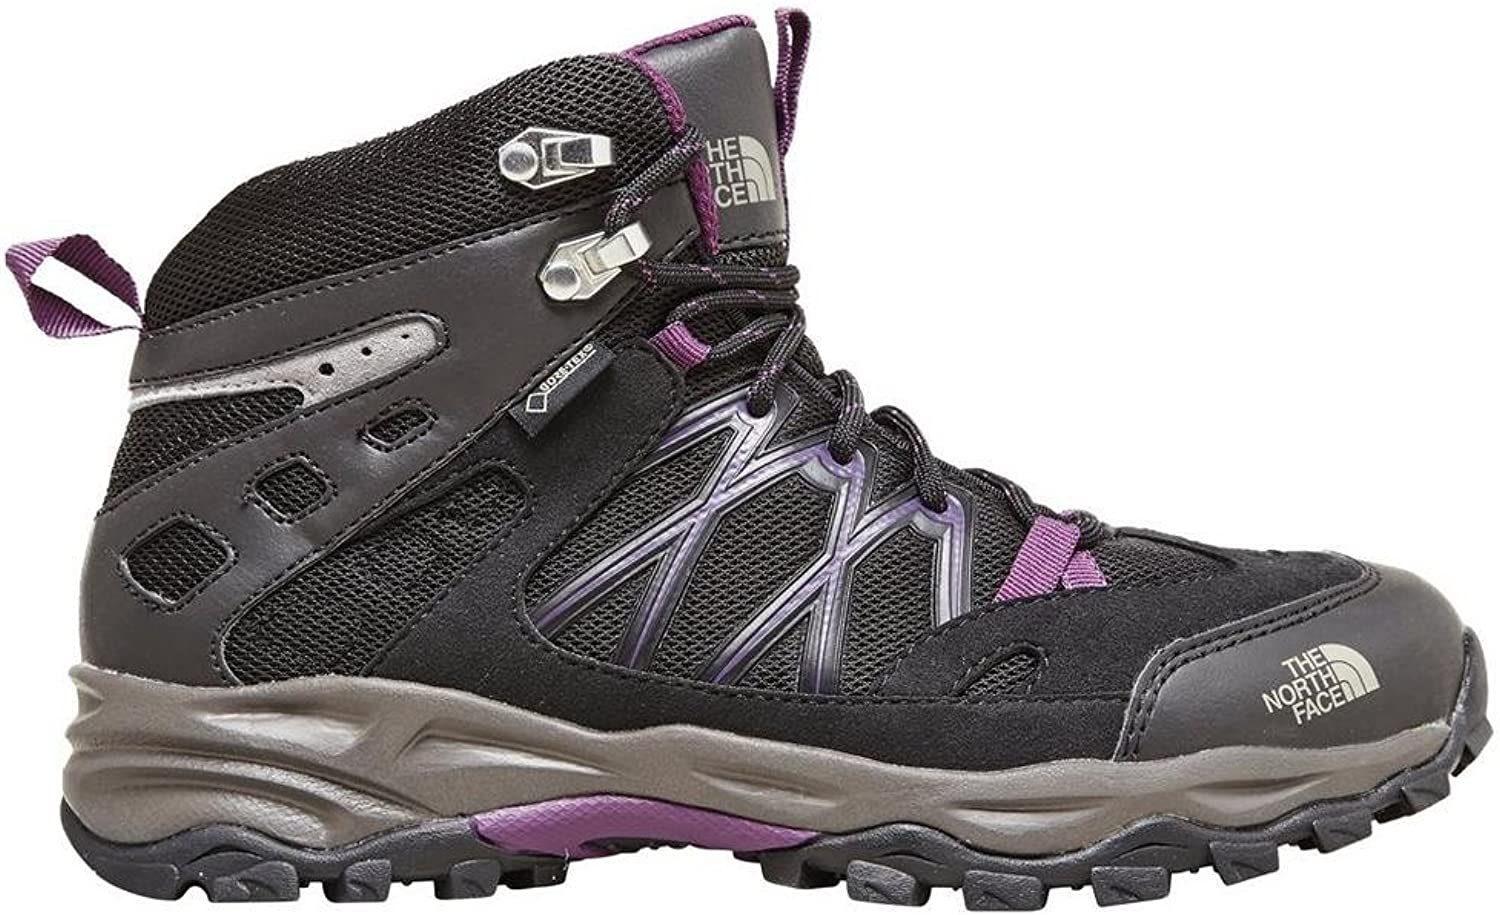 THE NORTH FACE Terra Mid GTX Woherren Walking Stiefel